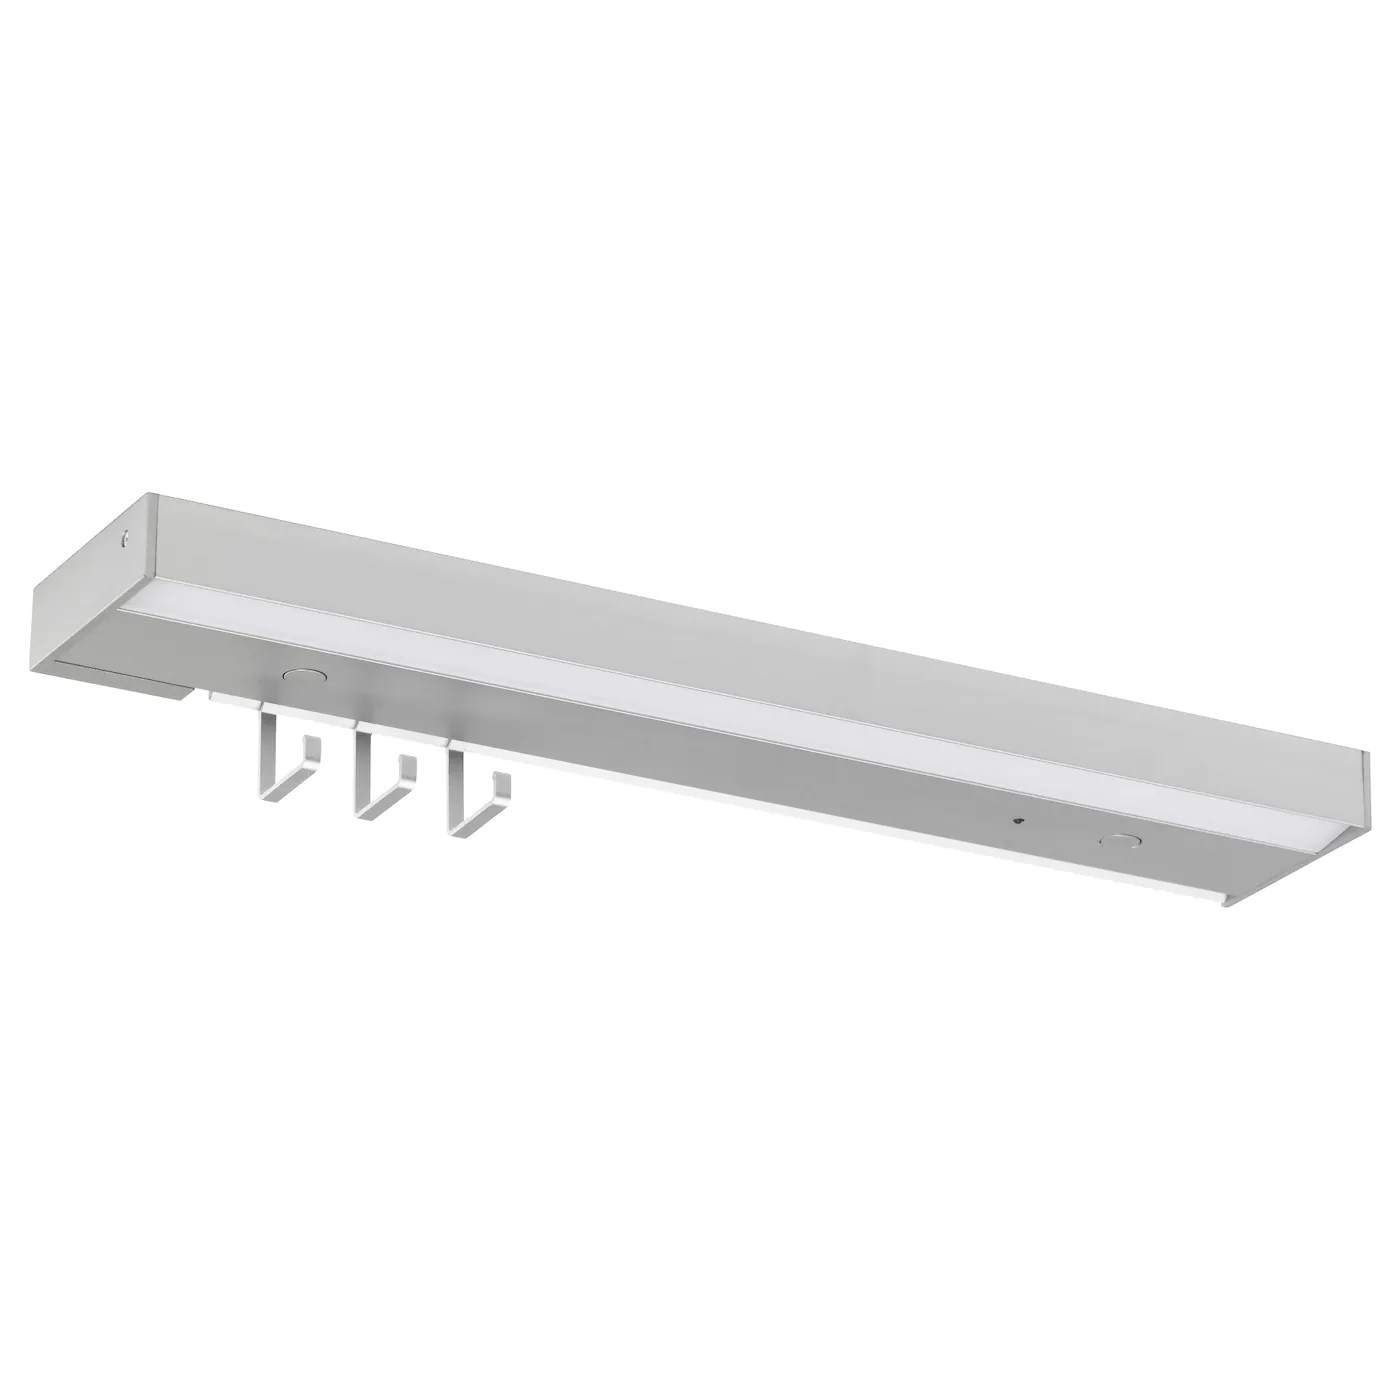 Led Plafondplaat Utrusta Led Worktop Lighting Aluminium Colour 40 Cm Ikea